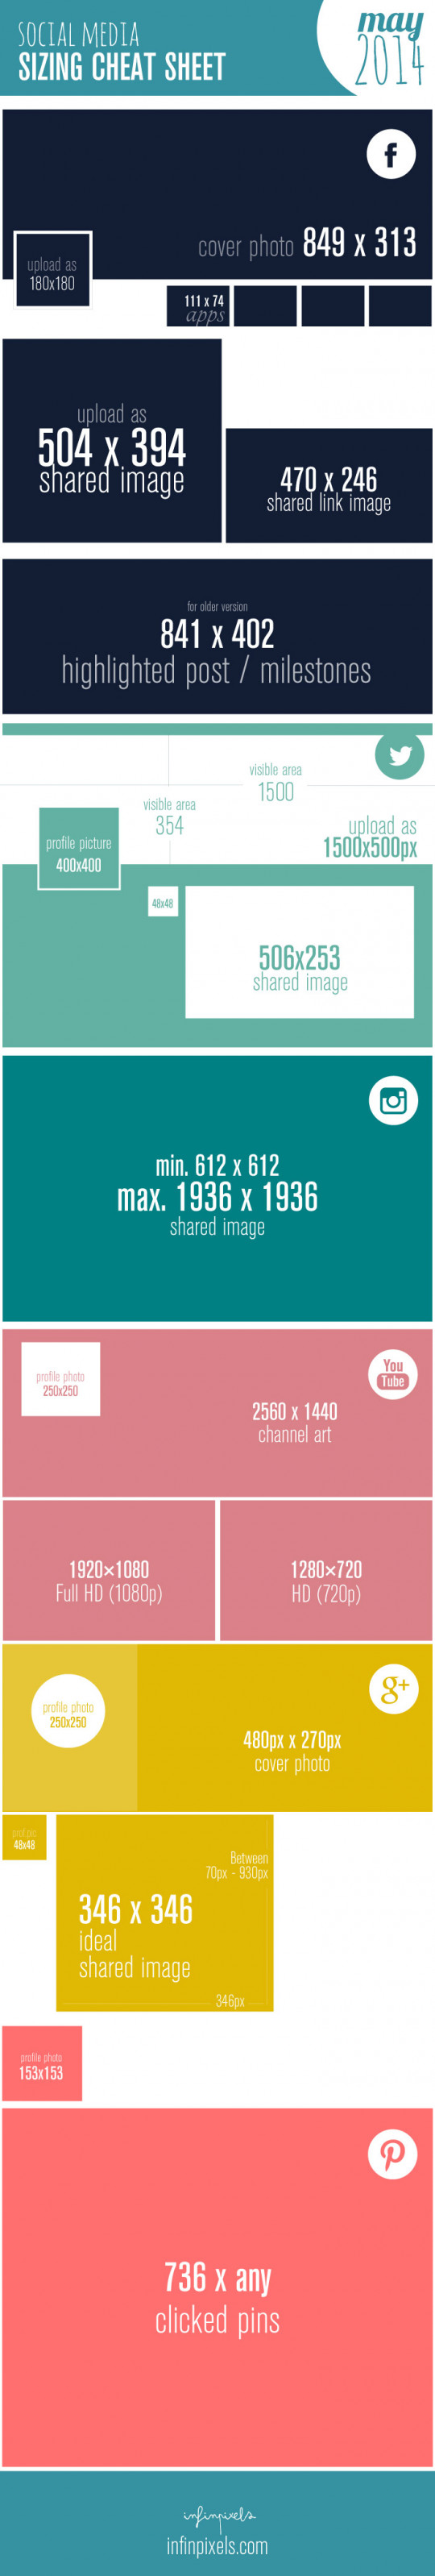 Social Media Sizing Cheat Sheet - 2014 - Edition 03